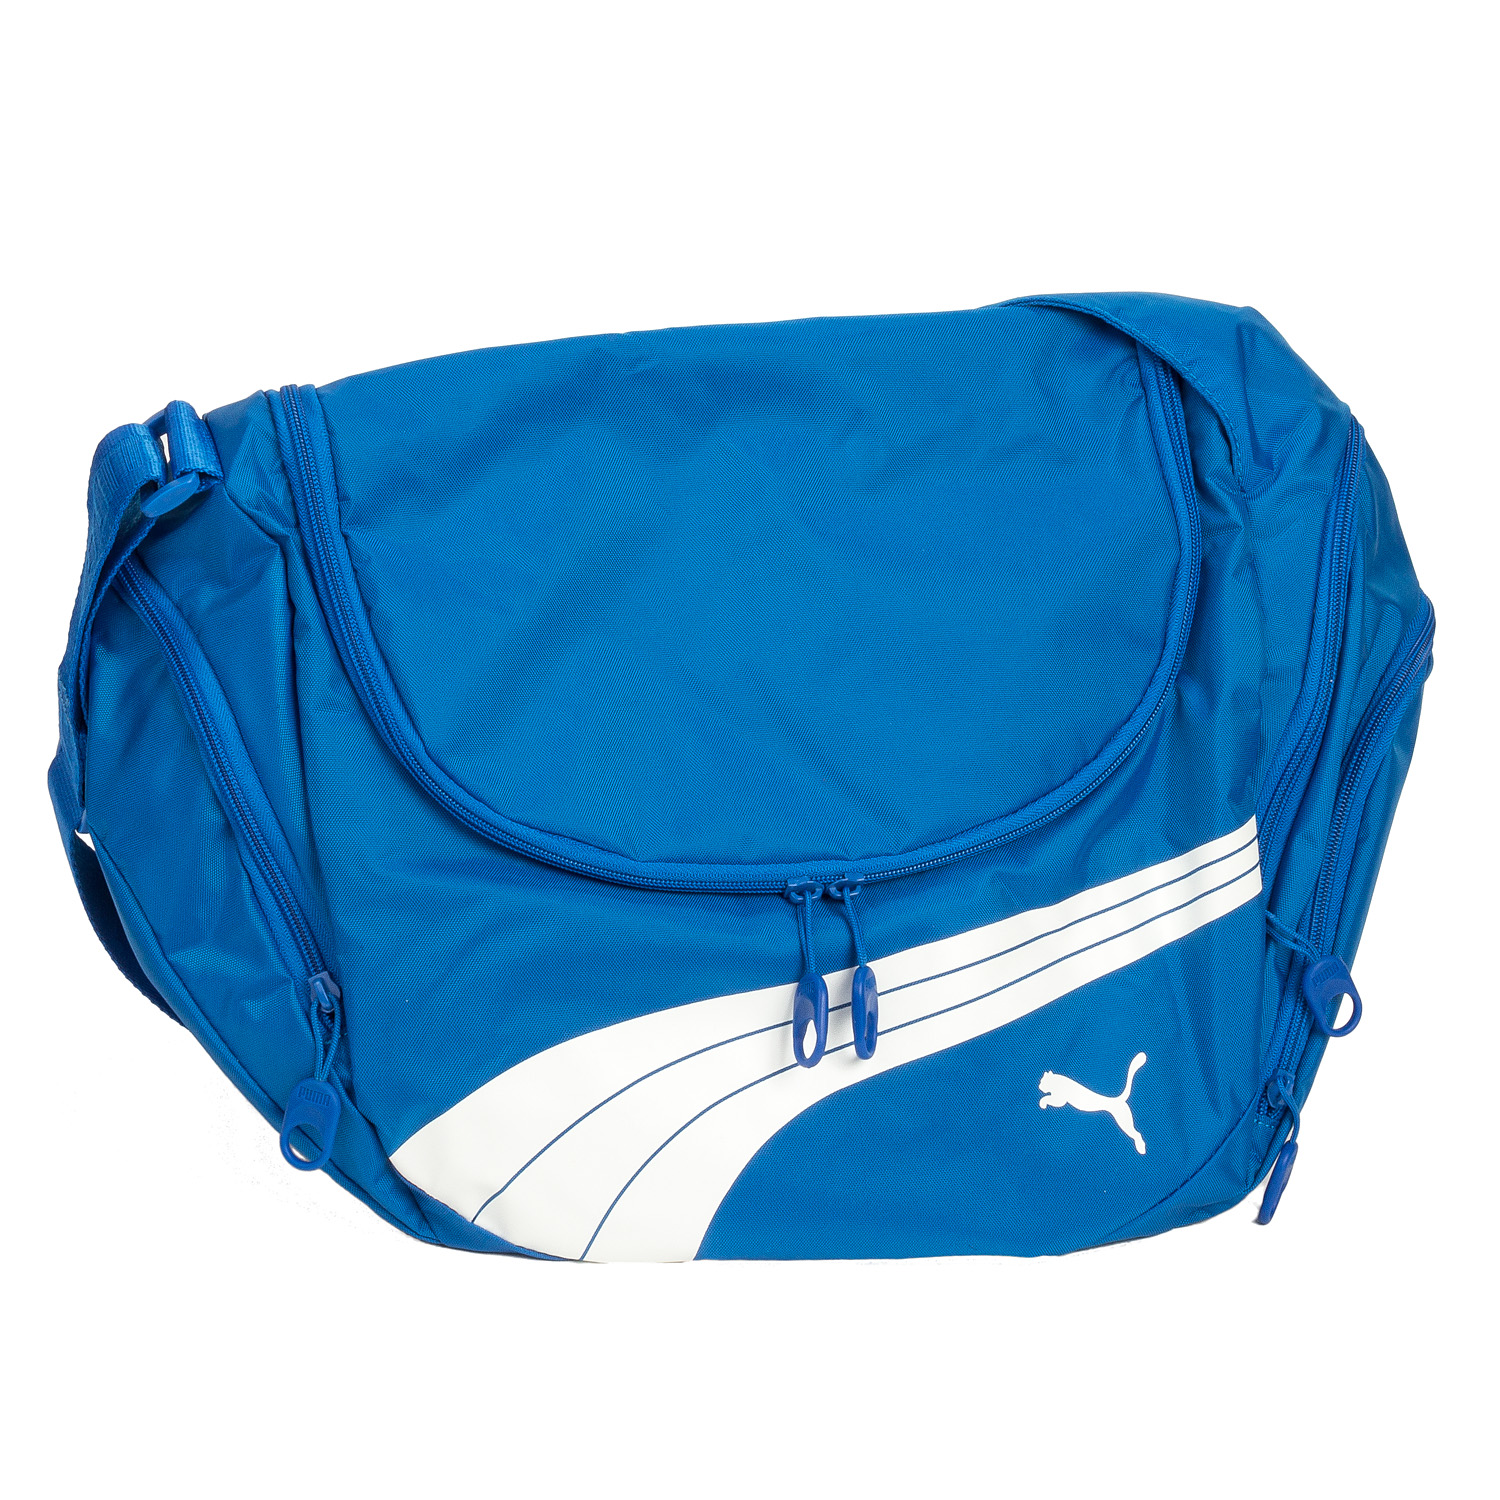 Puma Royal Blue Freestyle Hobo Travel Duffle Duffel Sports Gym Bag ...